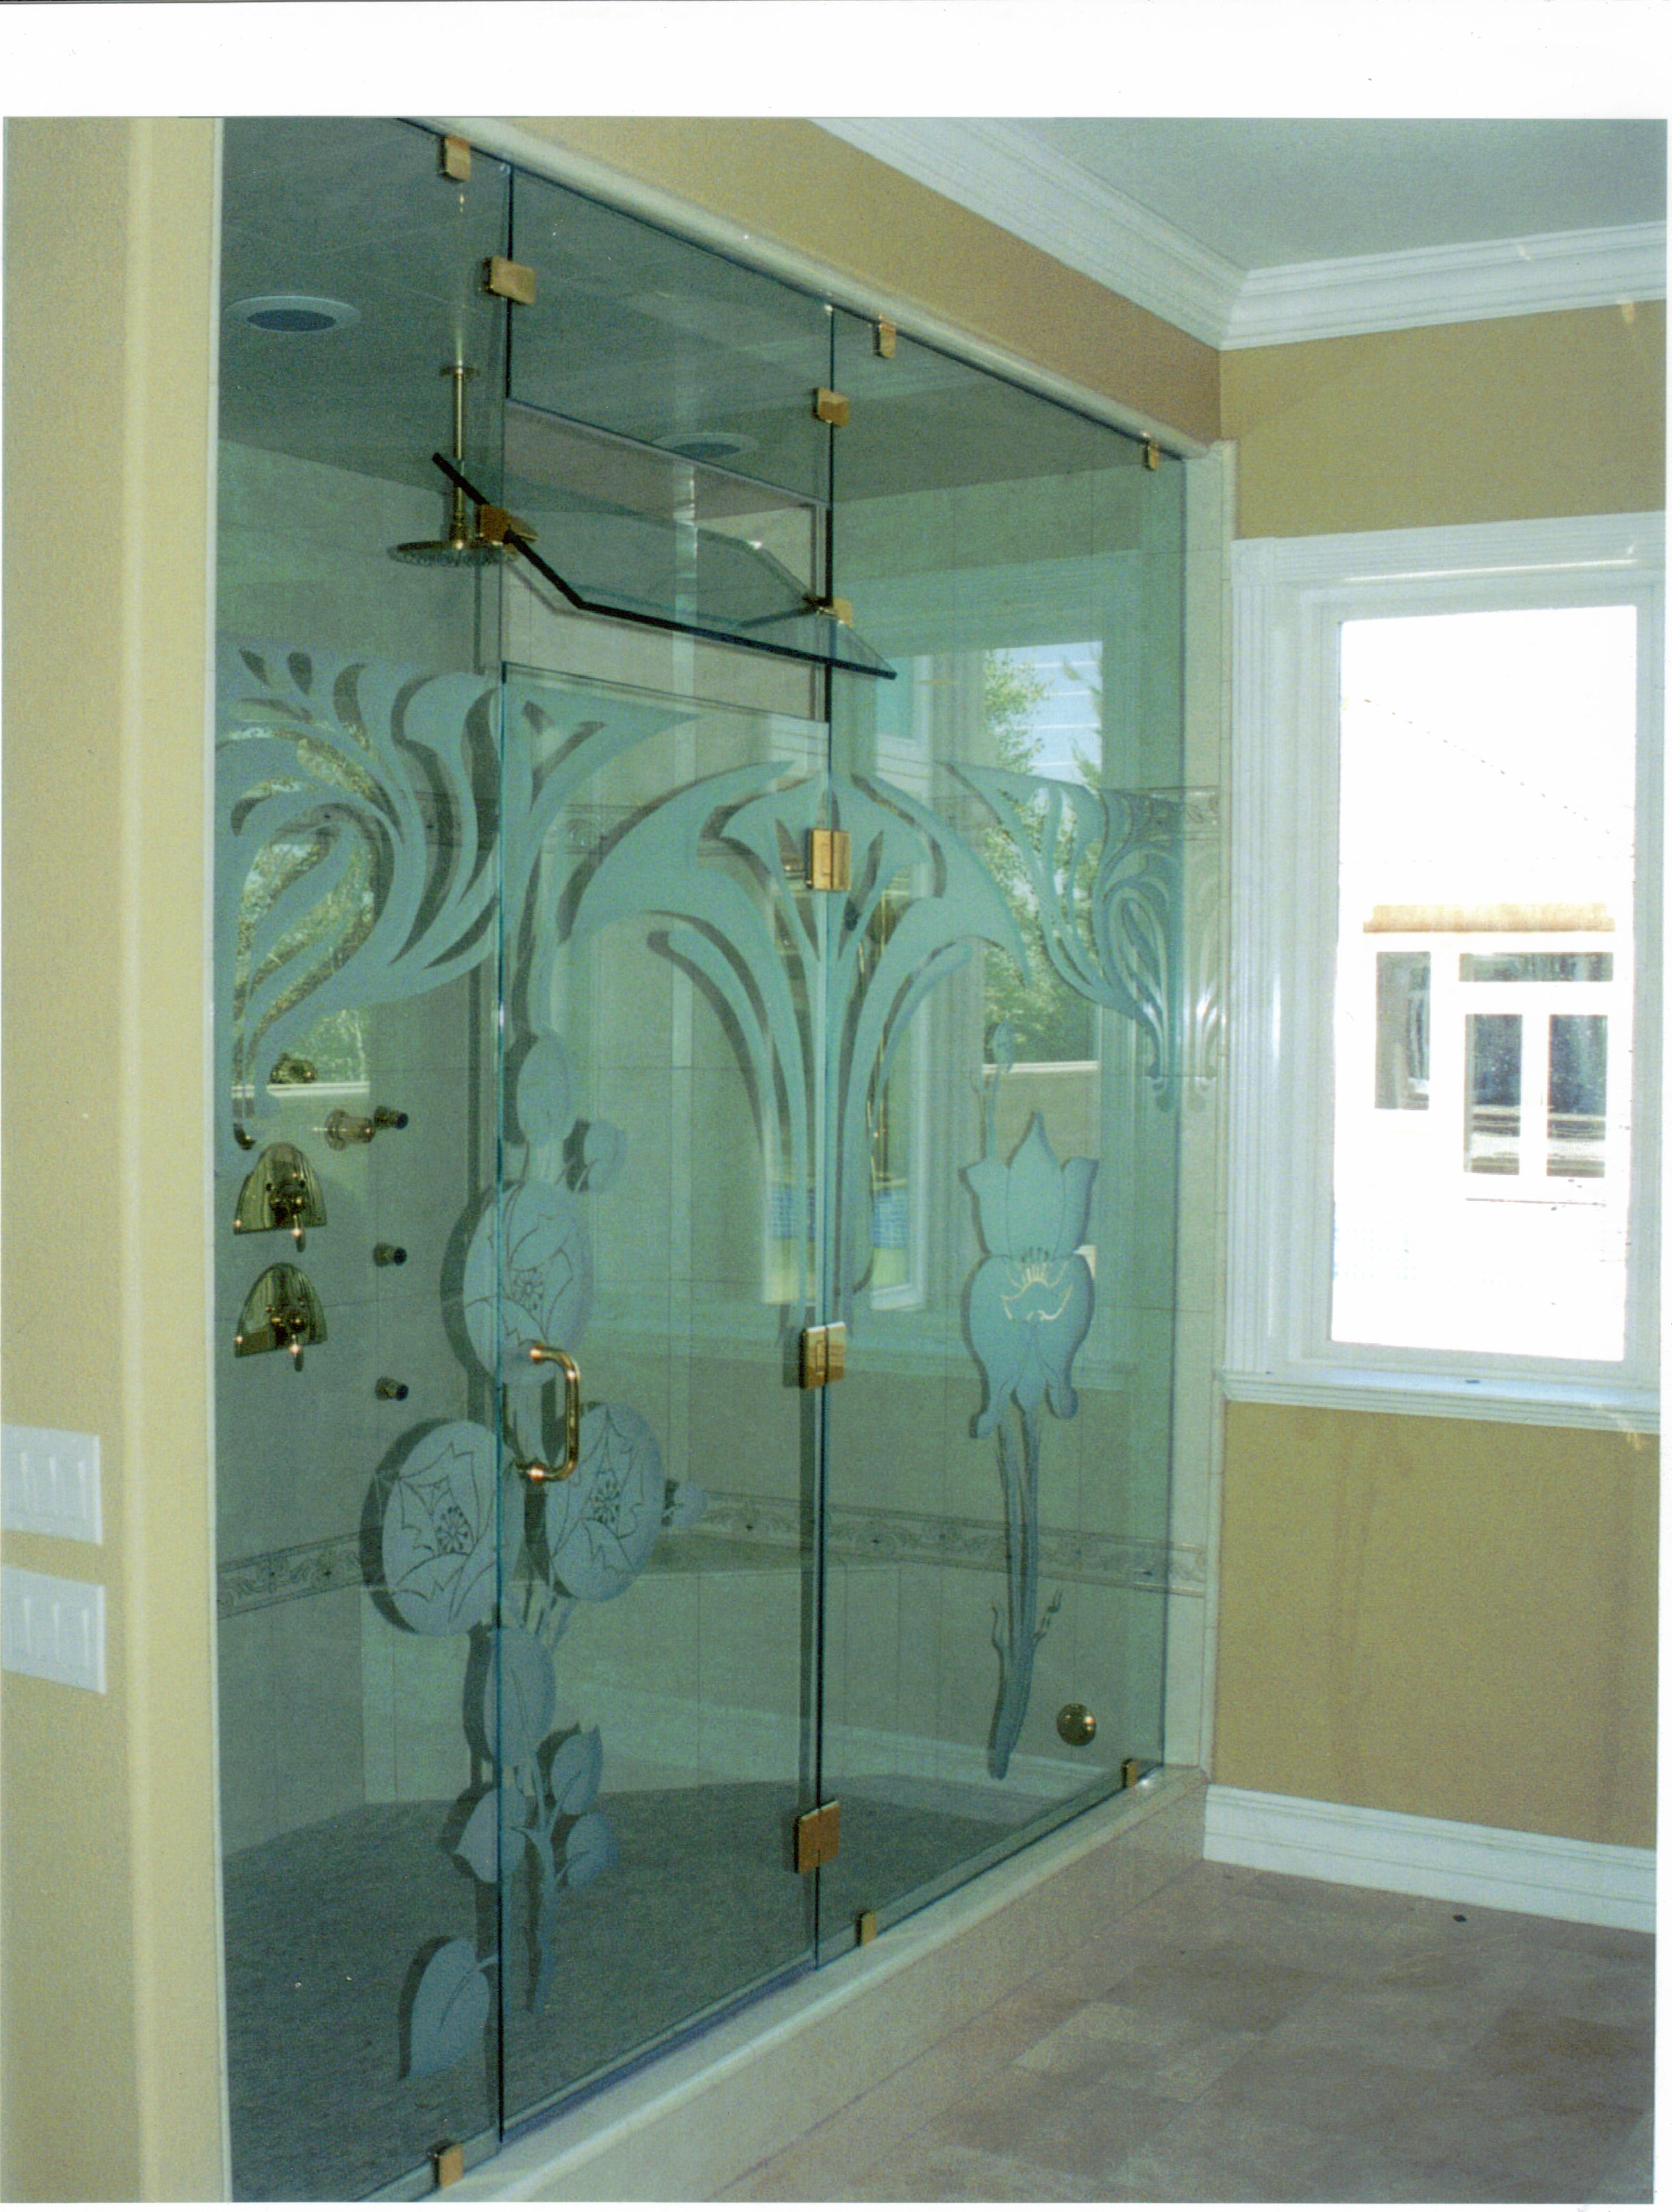 Bathroom Glass Designs Doorsbathroom glass door shower with glass door and screens